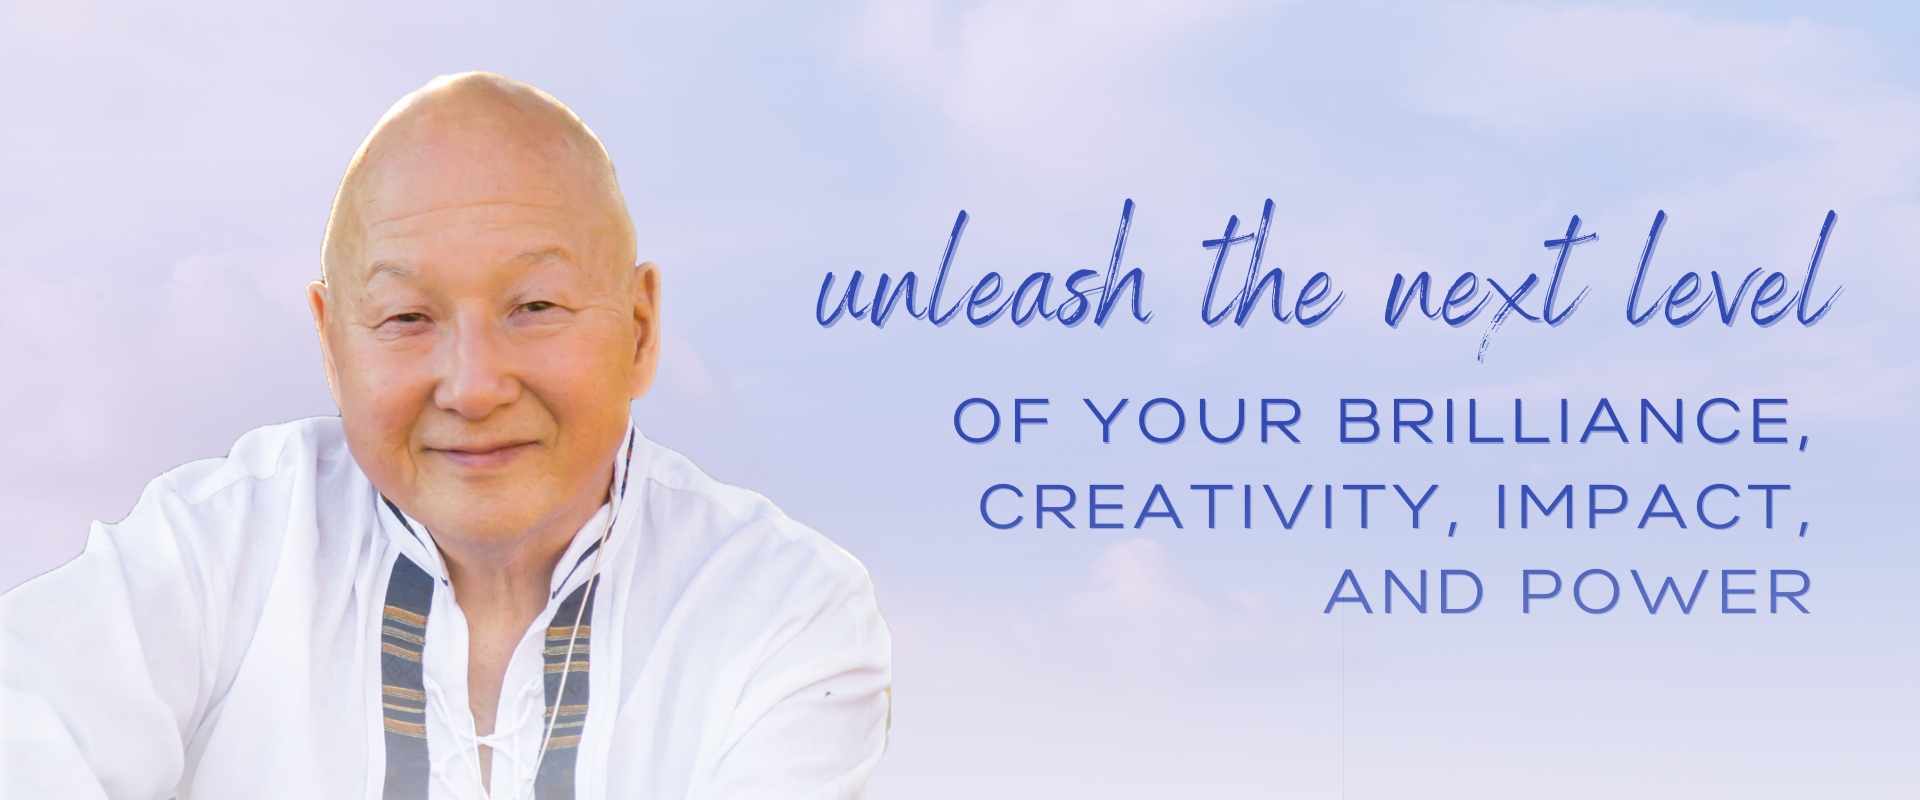 unleash the next level of your brilliance, creativity, impact, and power